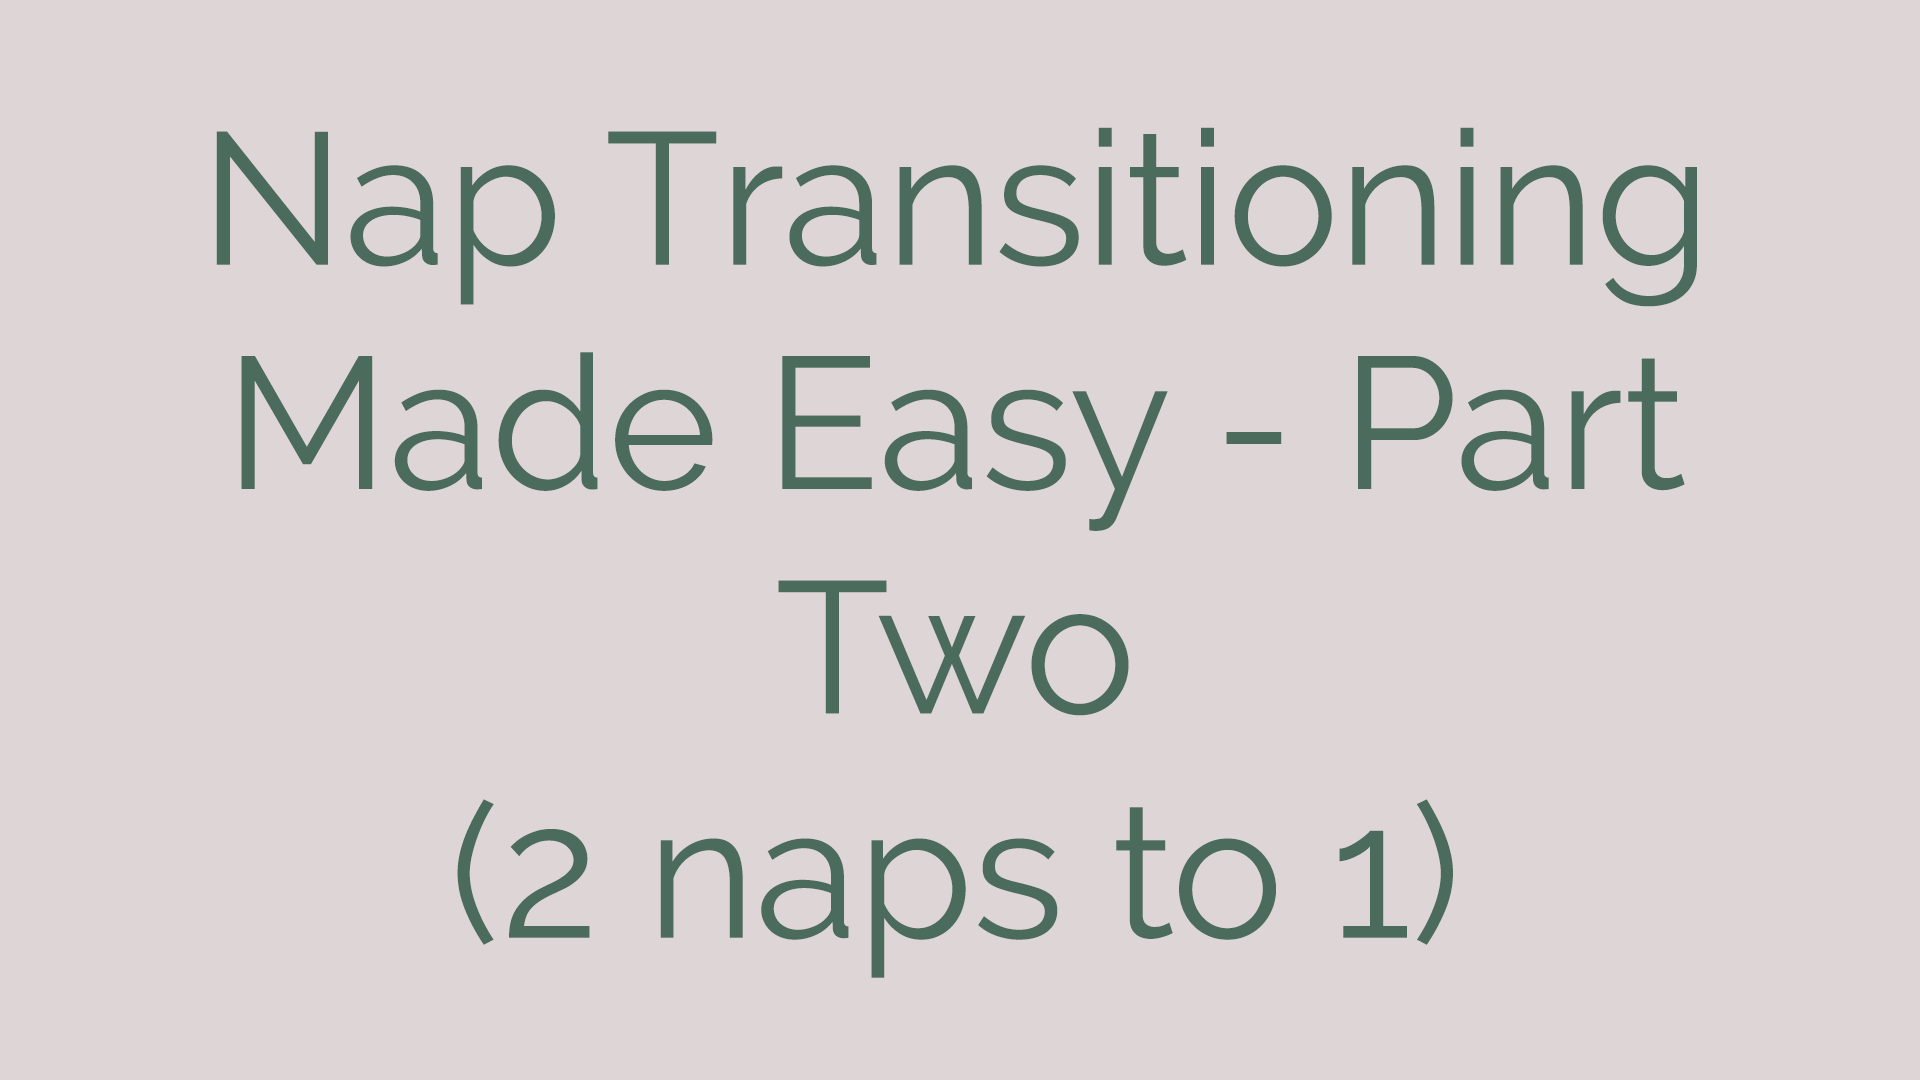 Nap Transitioning Made Easy - Part Two (2 Naps to 1)